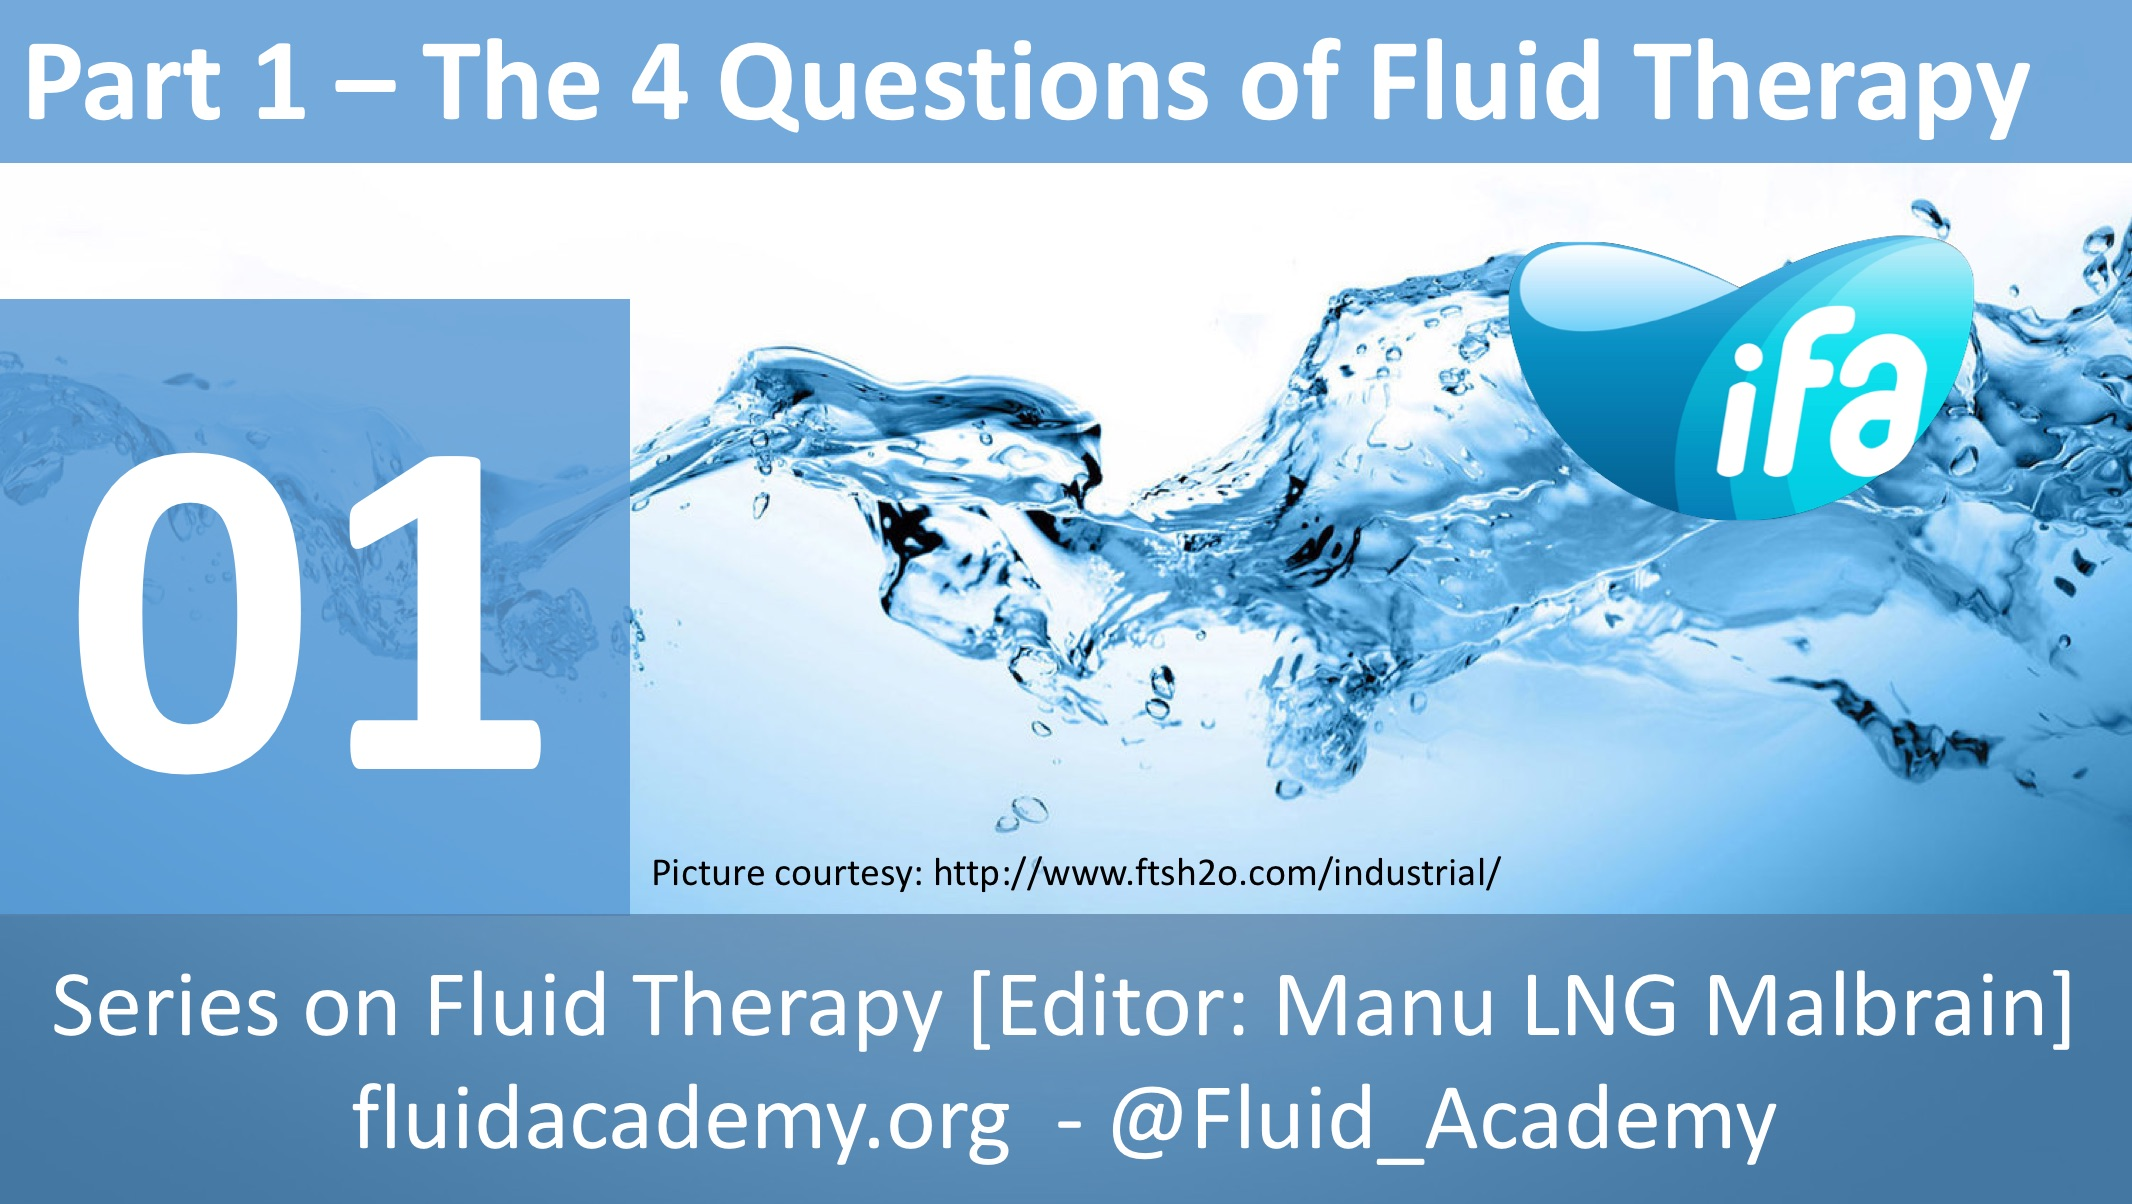 The four questions of fluid therapy